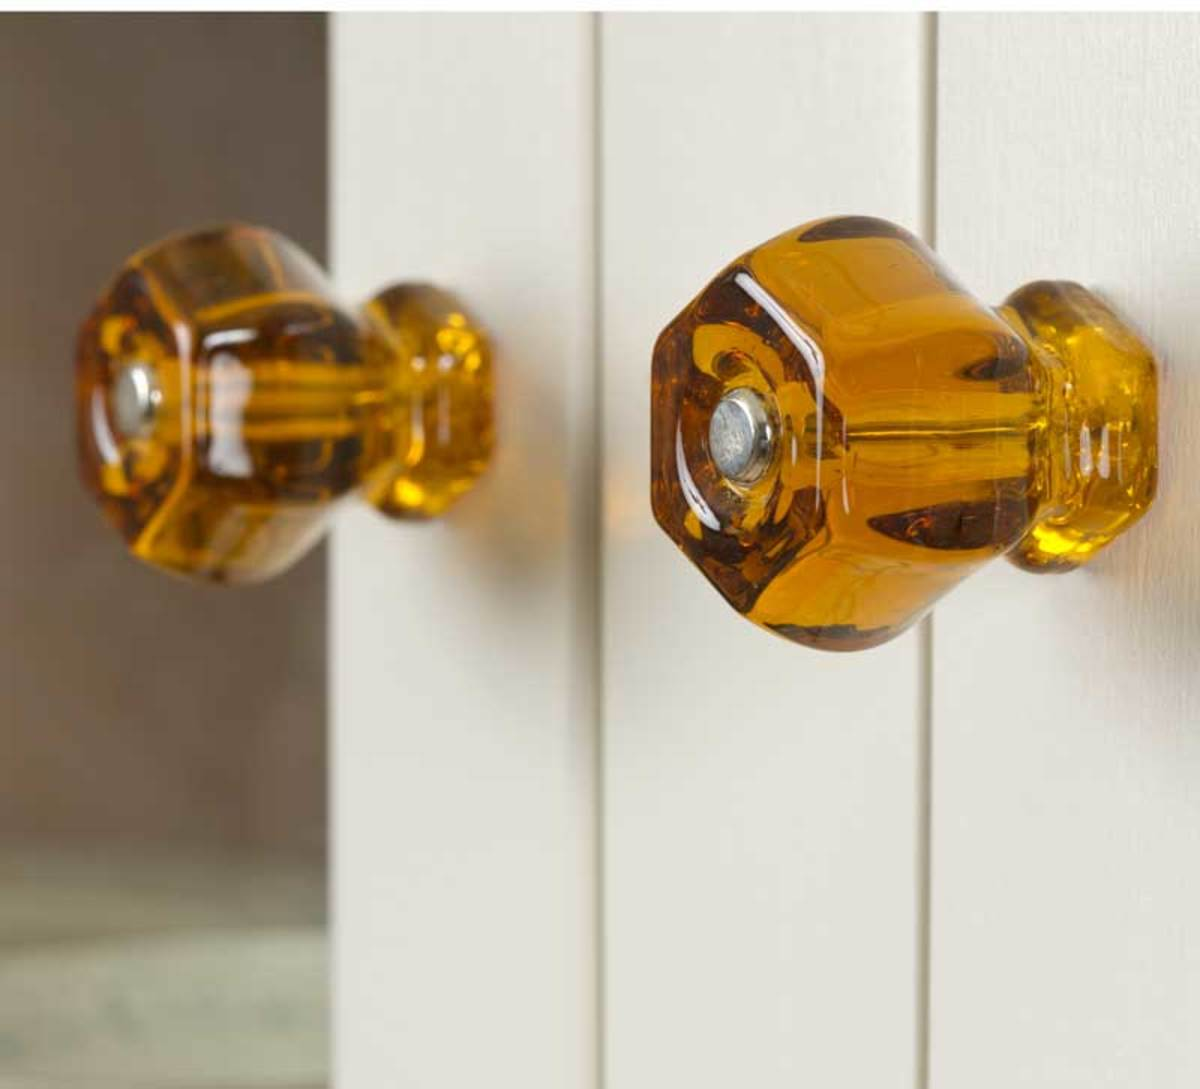 Cabinet knobs in amber glass add a warm glow to creamy white cabinets. Photo: Gridley + Graves